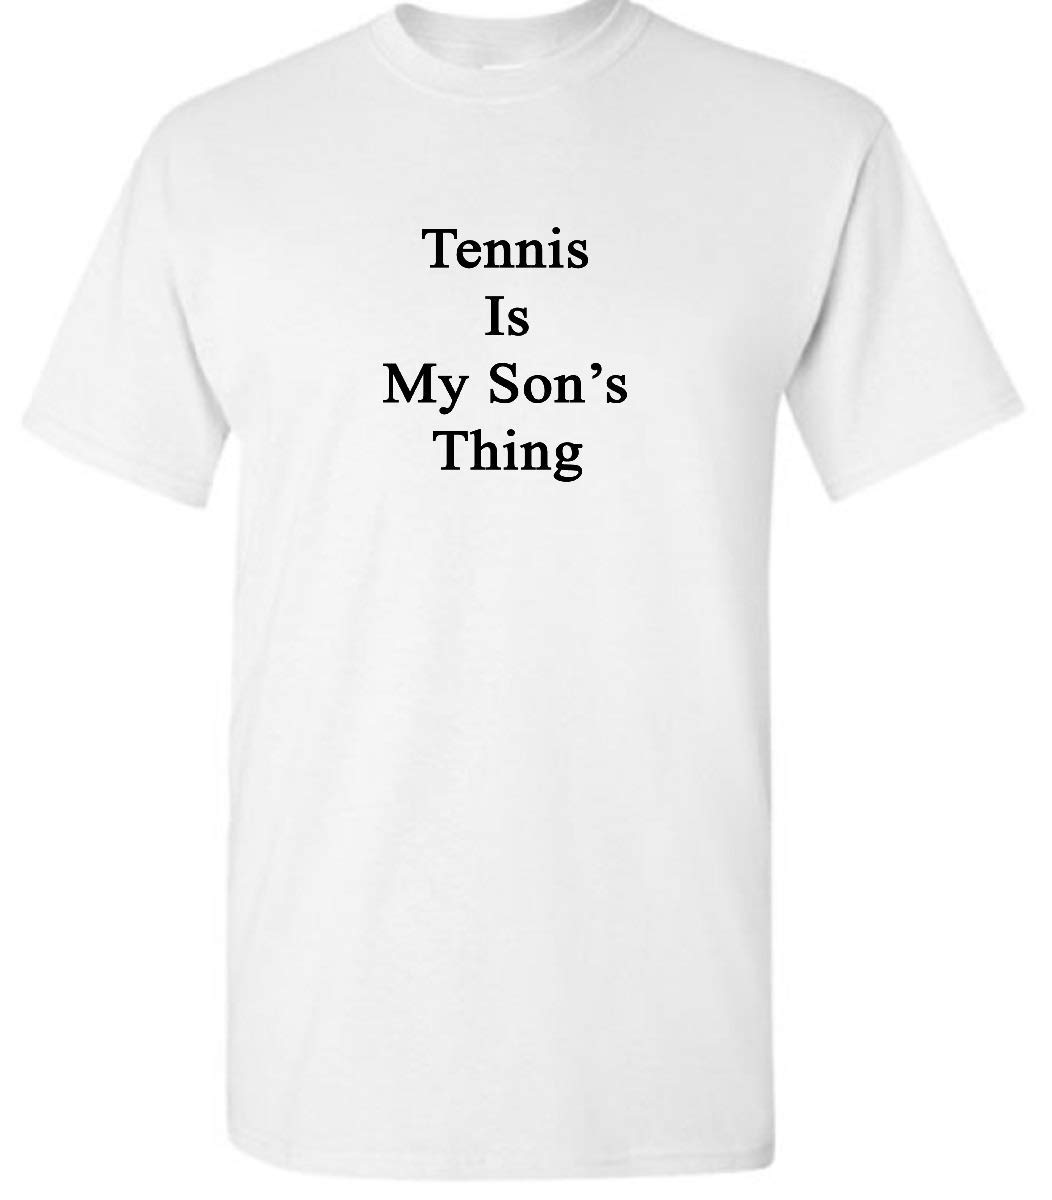 Tennis Is My Sons Thing Machine Wash Cold With Like Colors, Dry Low Heat Shirts